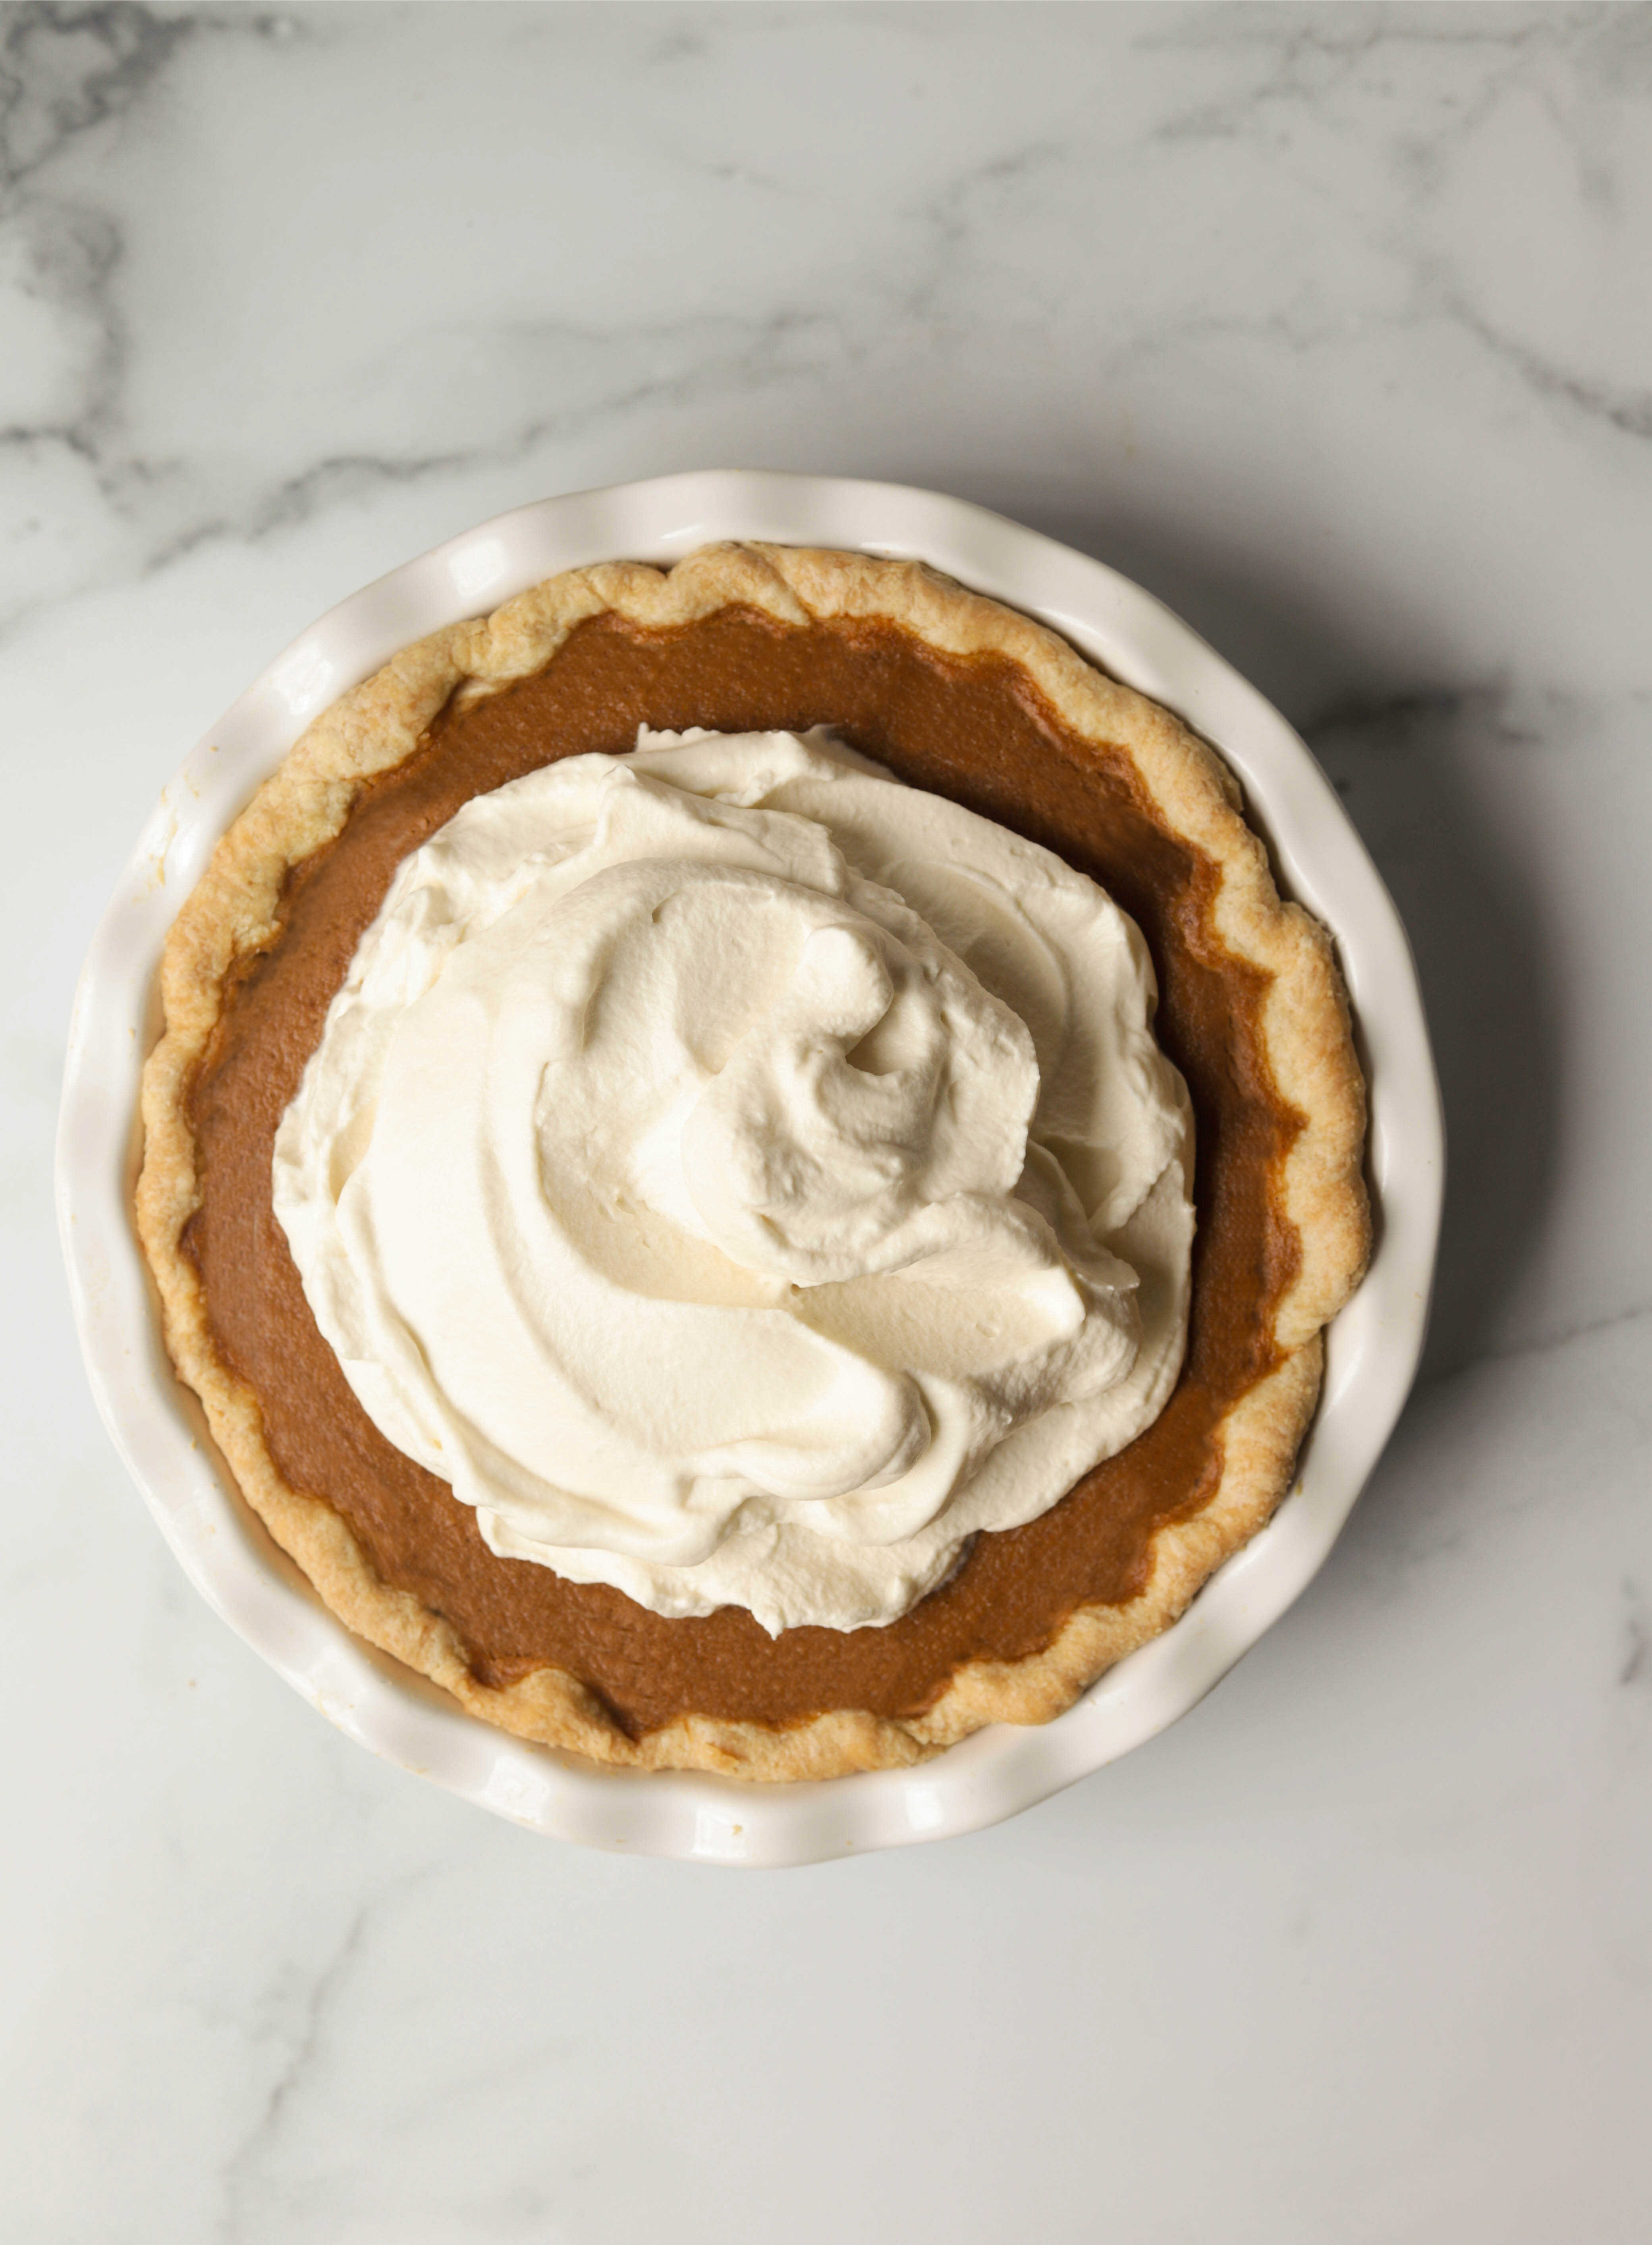 An overhead shot of a sweet potato pie with whipped cream on top.